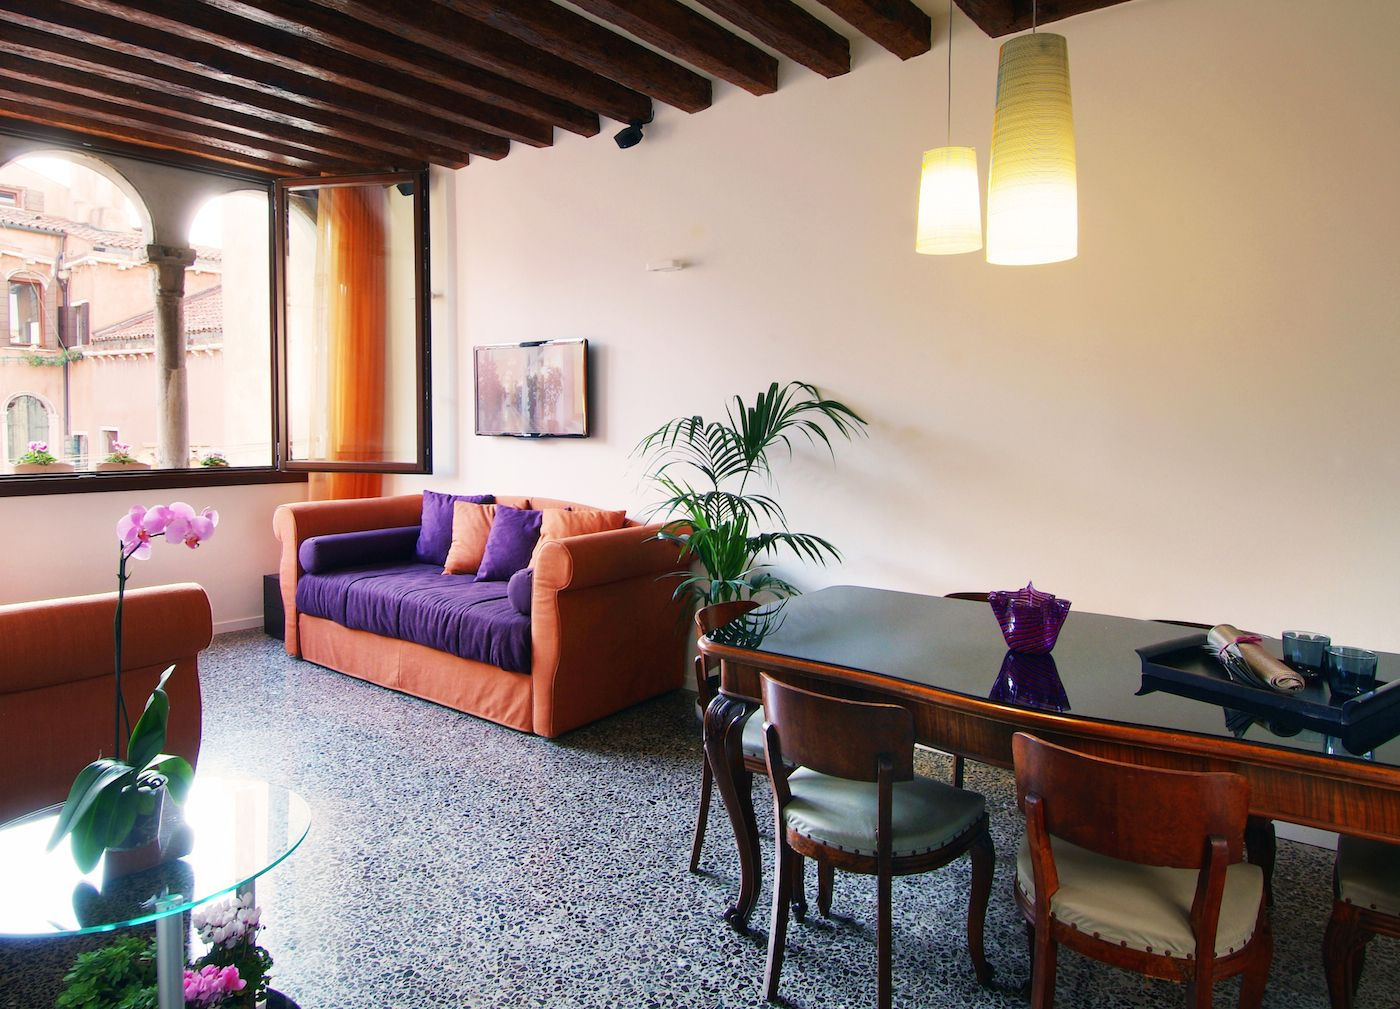 spacious living room with wooden beams, terrazzo flooring and the authentic trifora window